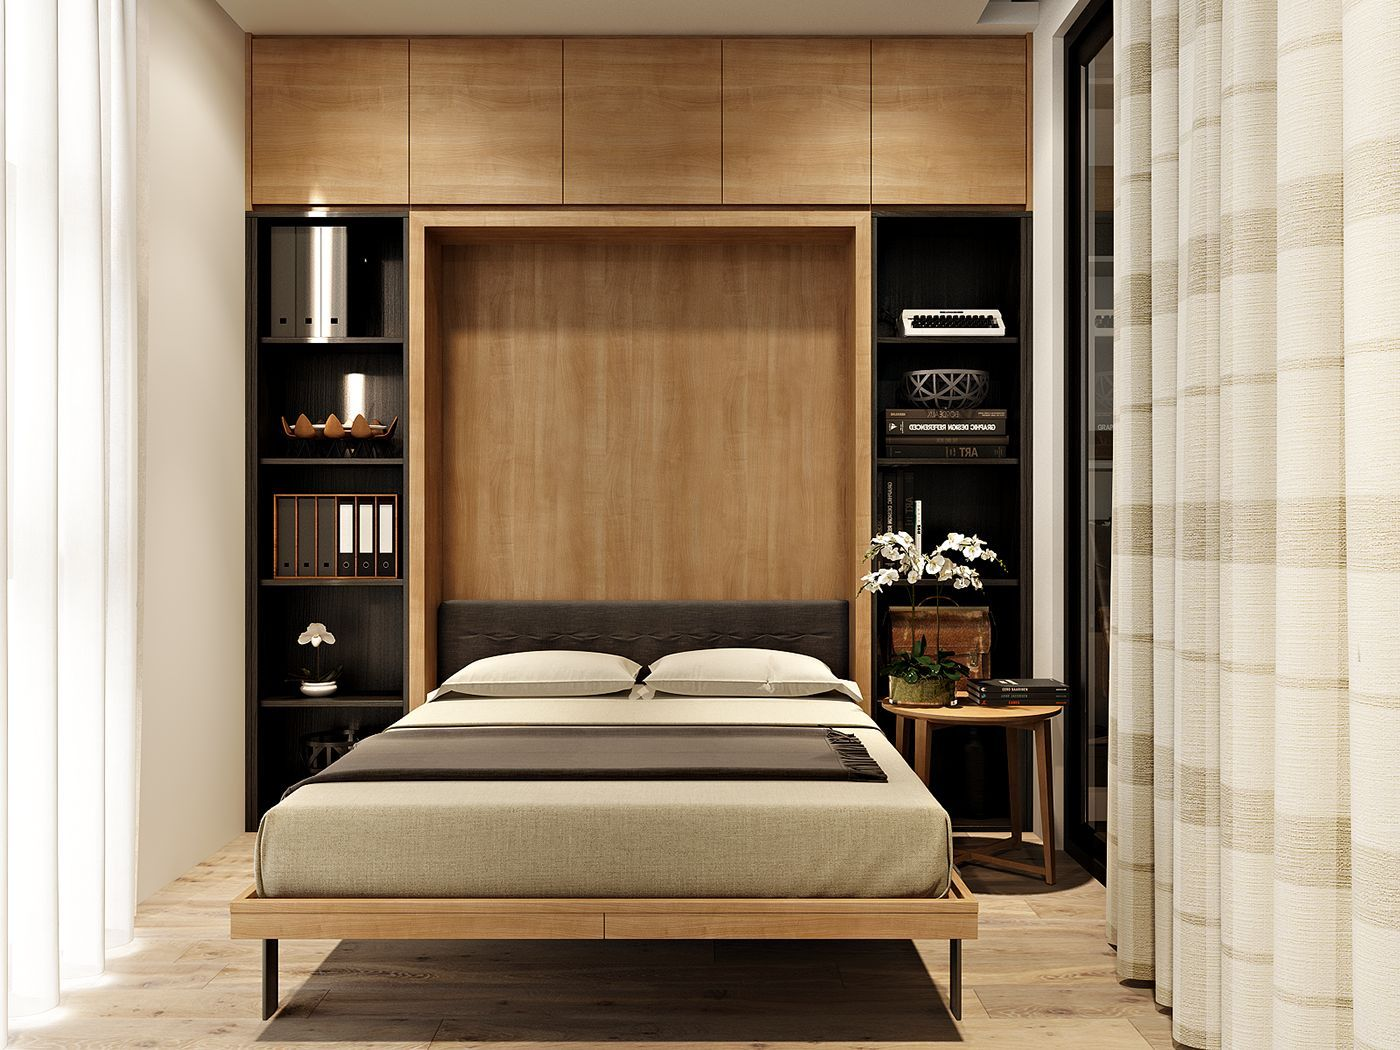 Interior Design Bedroom Magnificent Just Because A Space Is Small And Modest Doesn't Mean You Can Pack Review